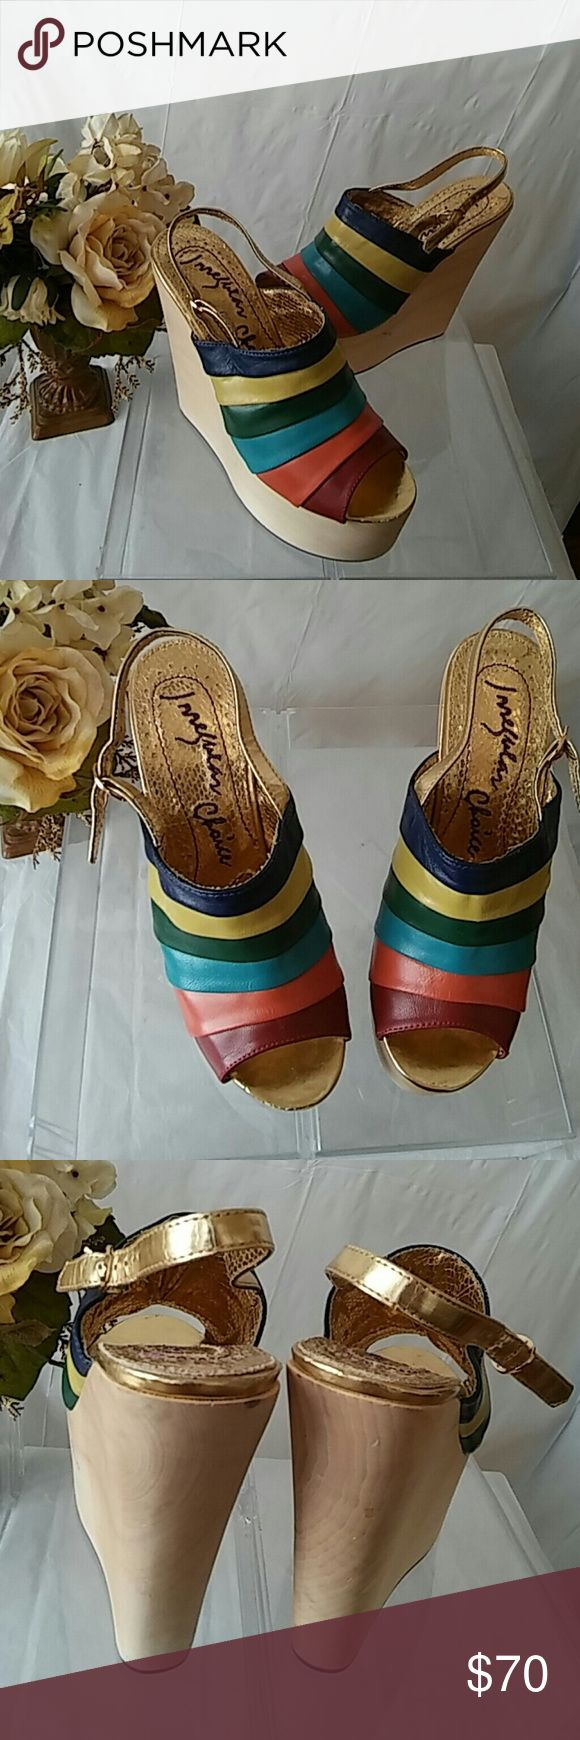 "Irregular Choice Chica Chola Rainbow Wedgies If you need to increase your height, theses shoes will do it with style! Add them to your vacation in the Island wardrobe!  The shoes look almost new.  Approximate heel height: 6"", Size: 8 Irregular Choice Shoes Wedges"